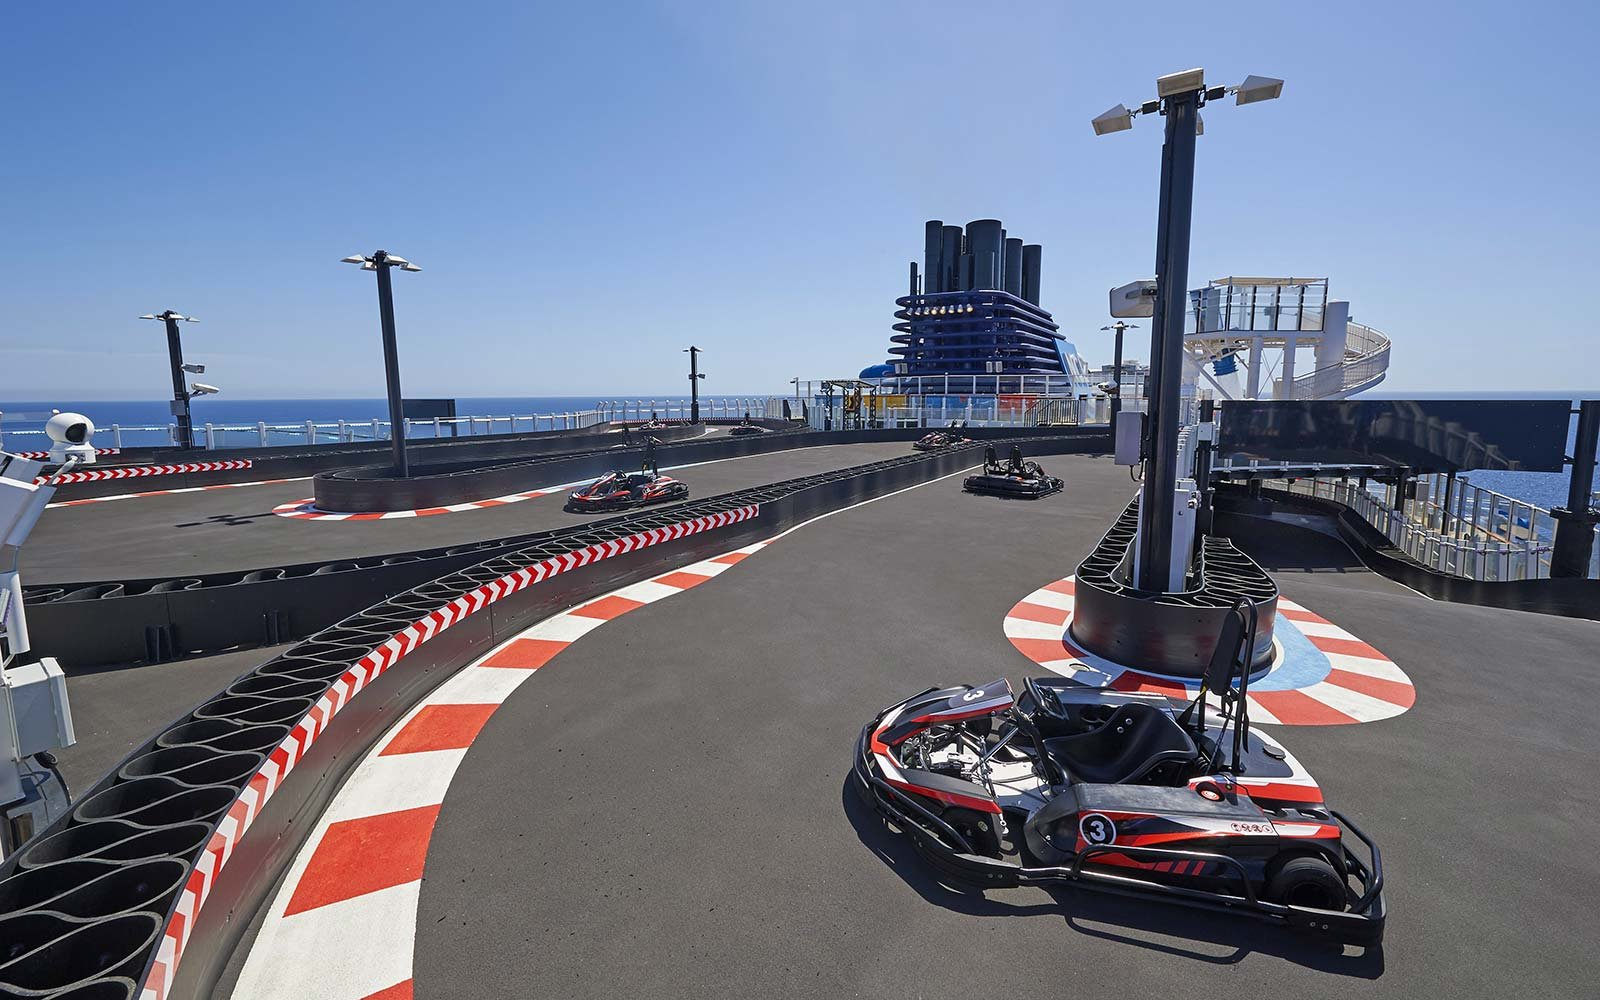 Norwegian Cruise Line Bliss Ship Go Carts Racing Track